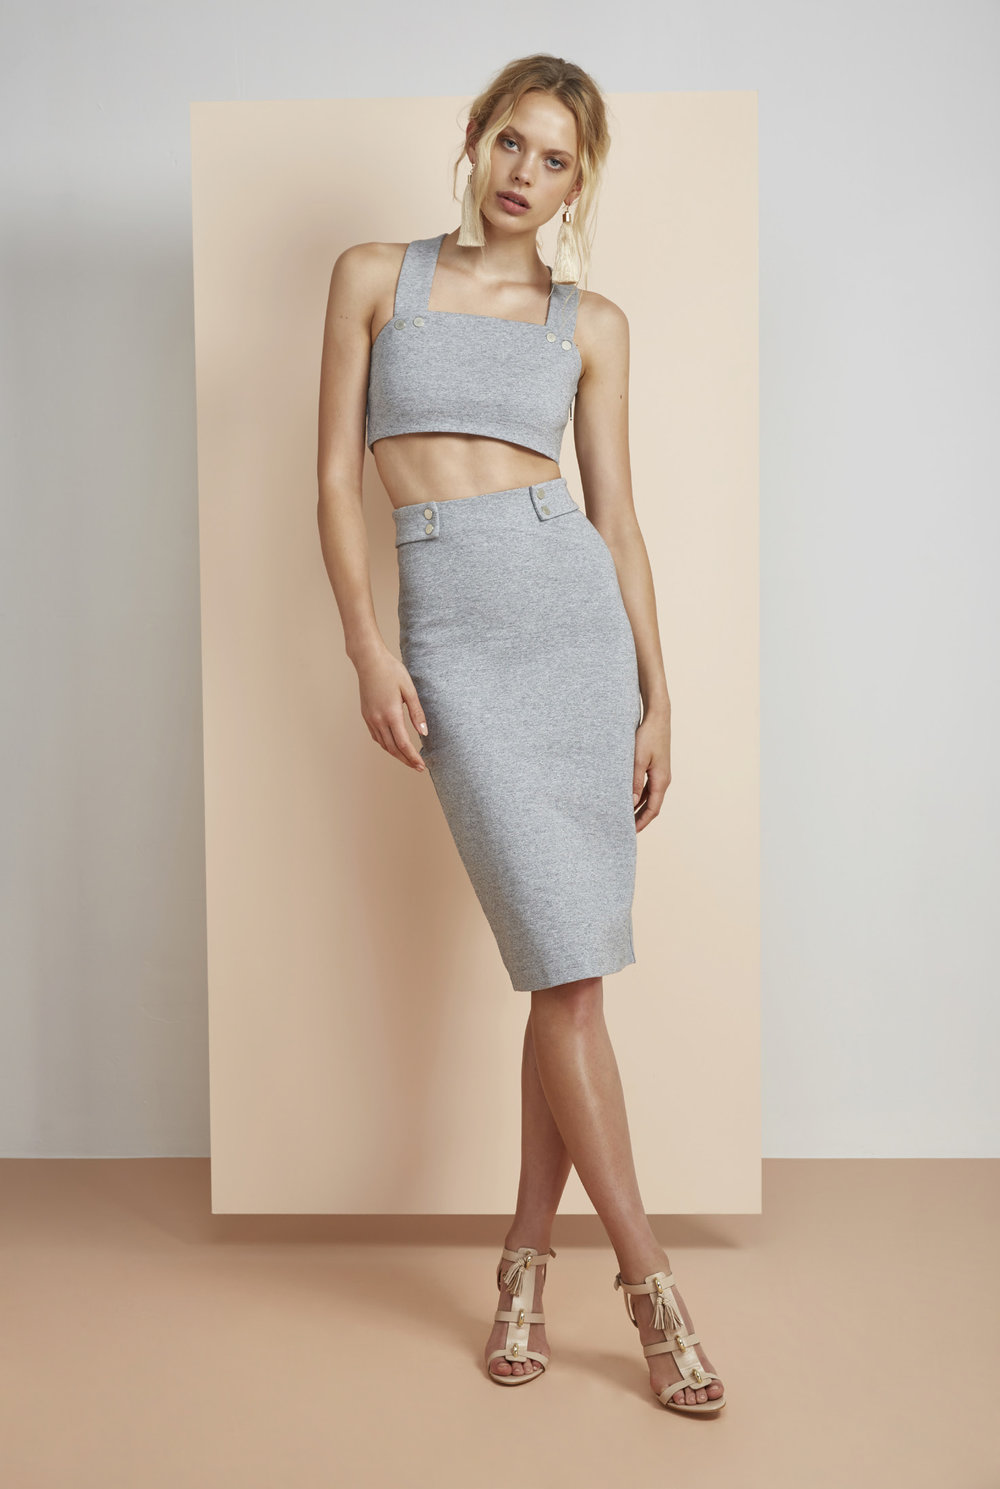 Hans Crop Top + Skirt.